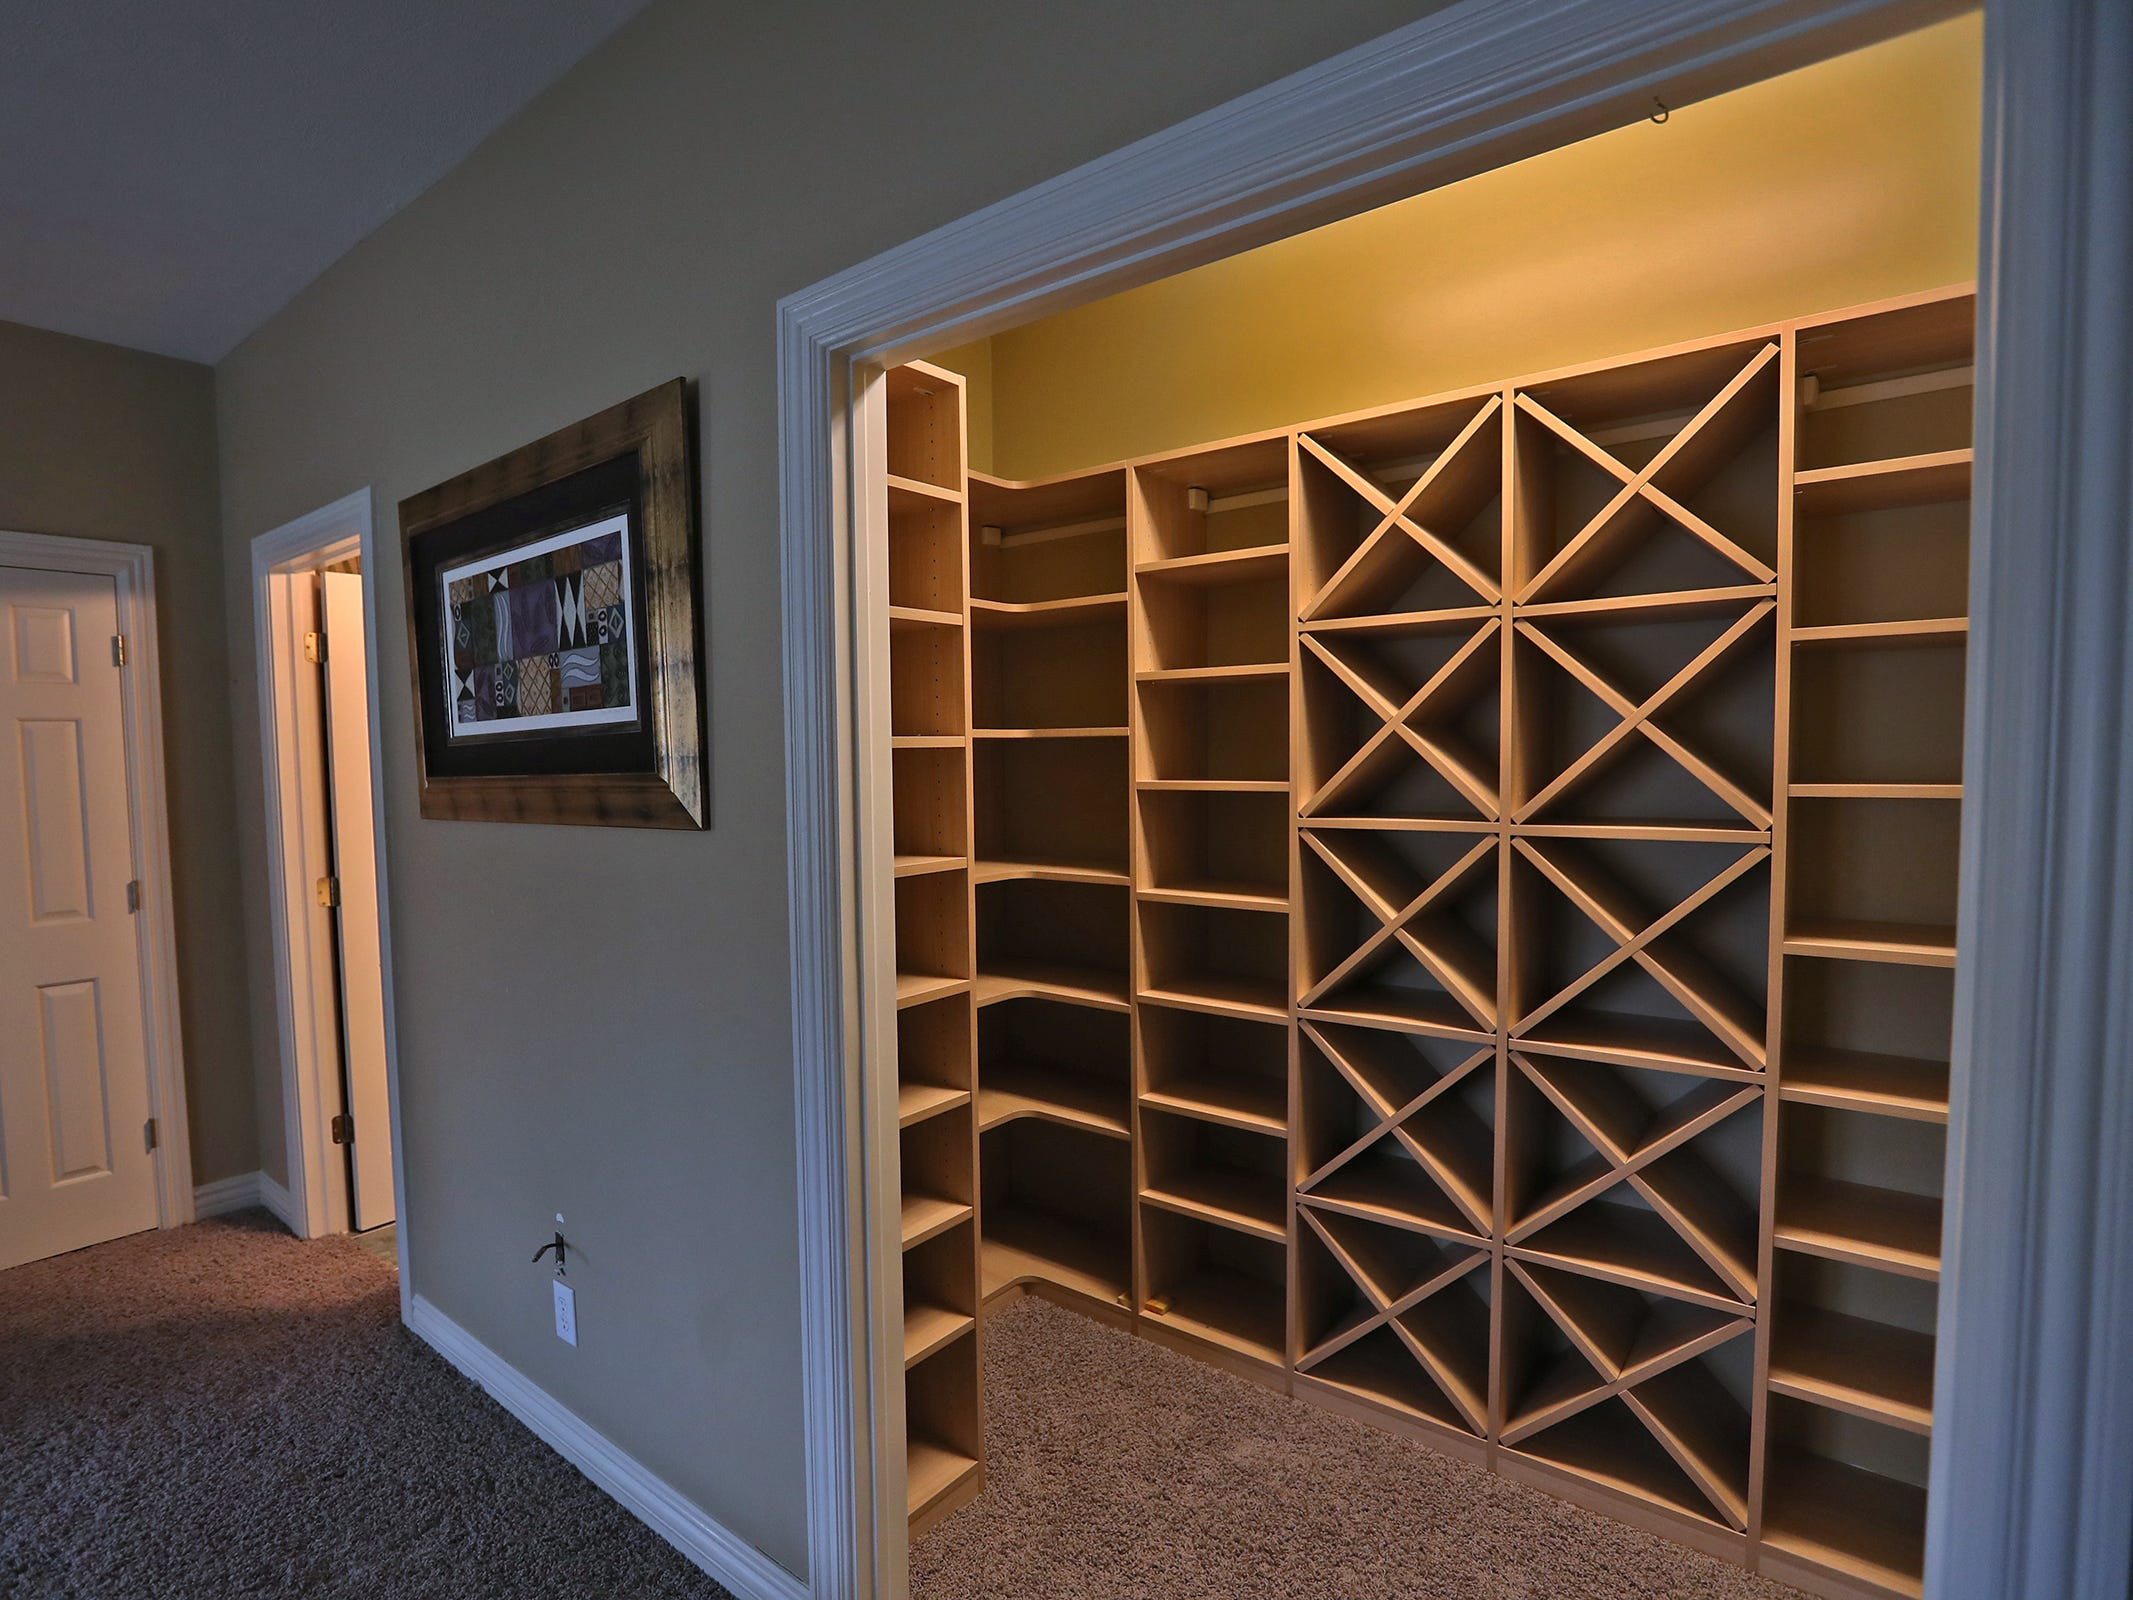 This is a walk-in closet for one of the bedrooms in the home at 1270 Laurelwood Ct. in Carmel, Friday, Dec. 28, 2018.